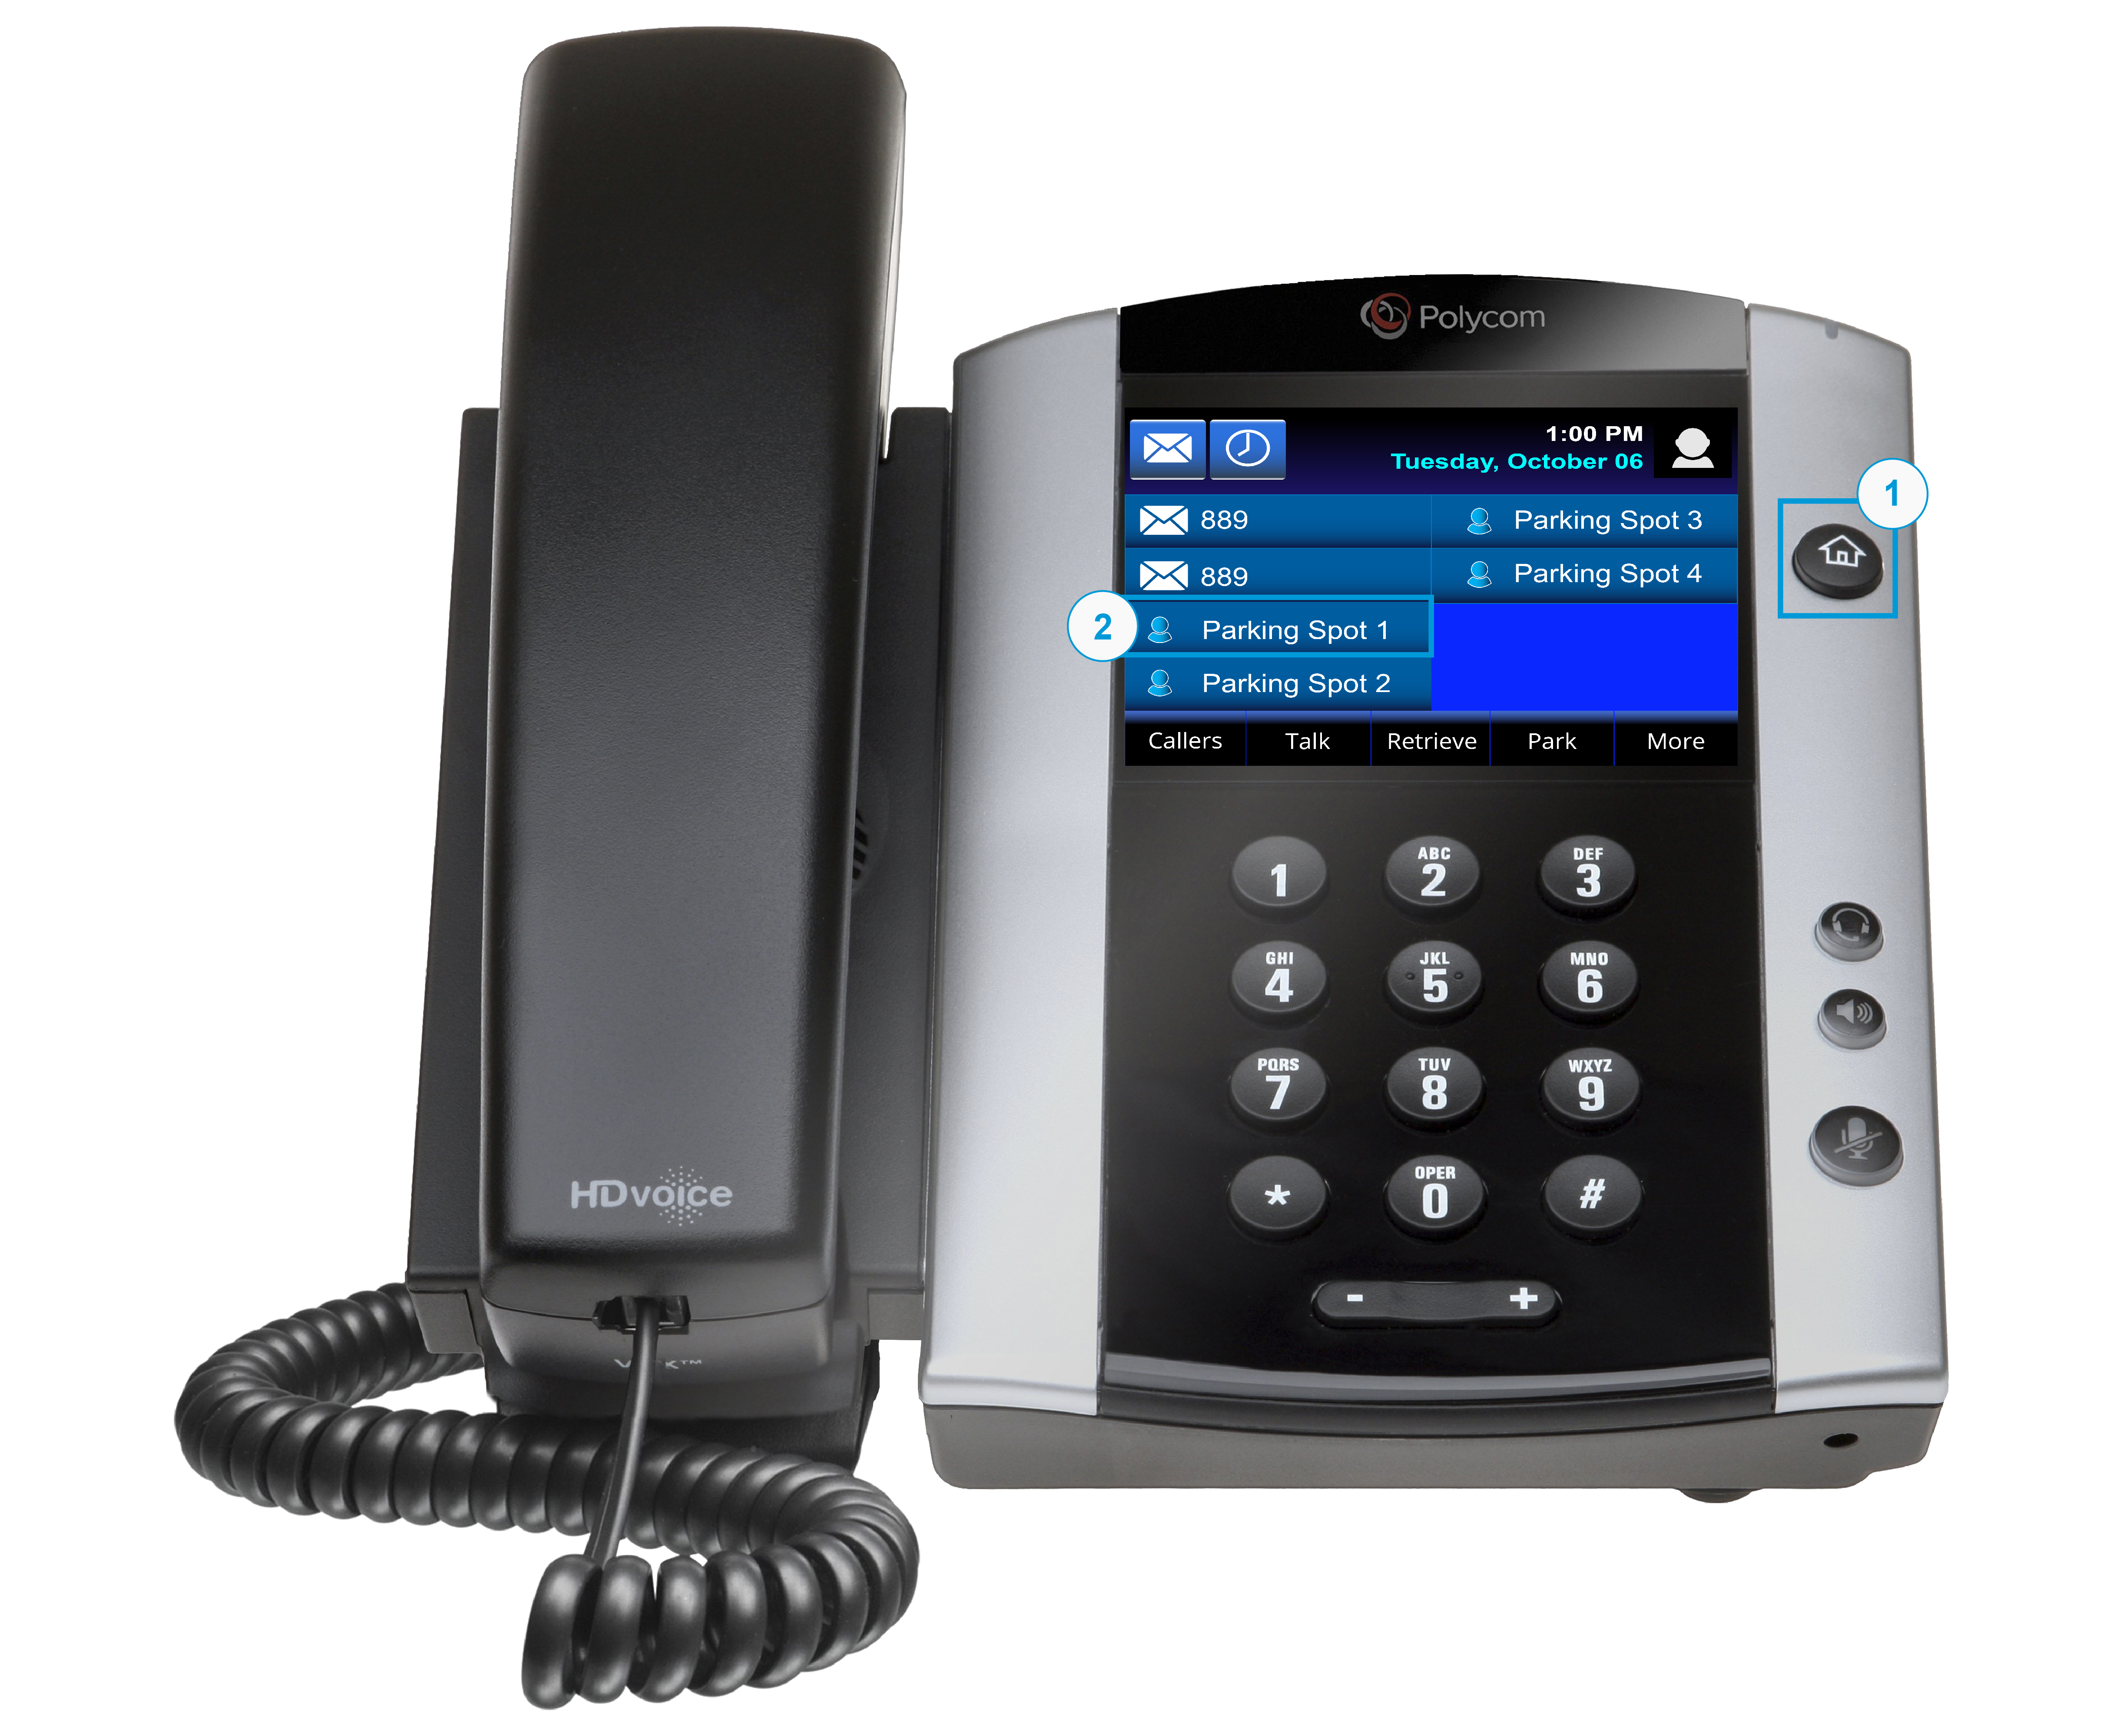 Image showing the Polycom VVX 501 with the Home button and Parking Spot highlighted. - Image opens in full resolution in a new tab.